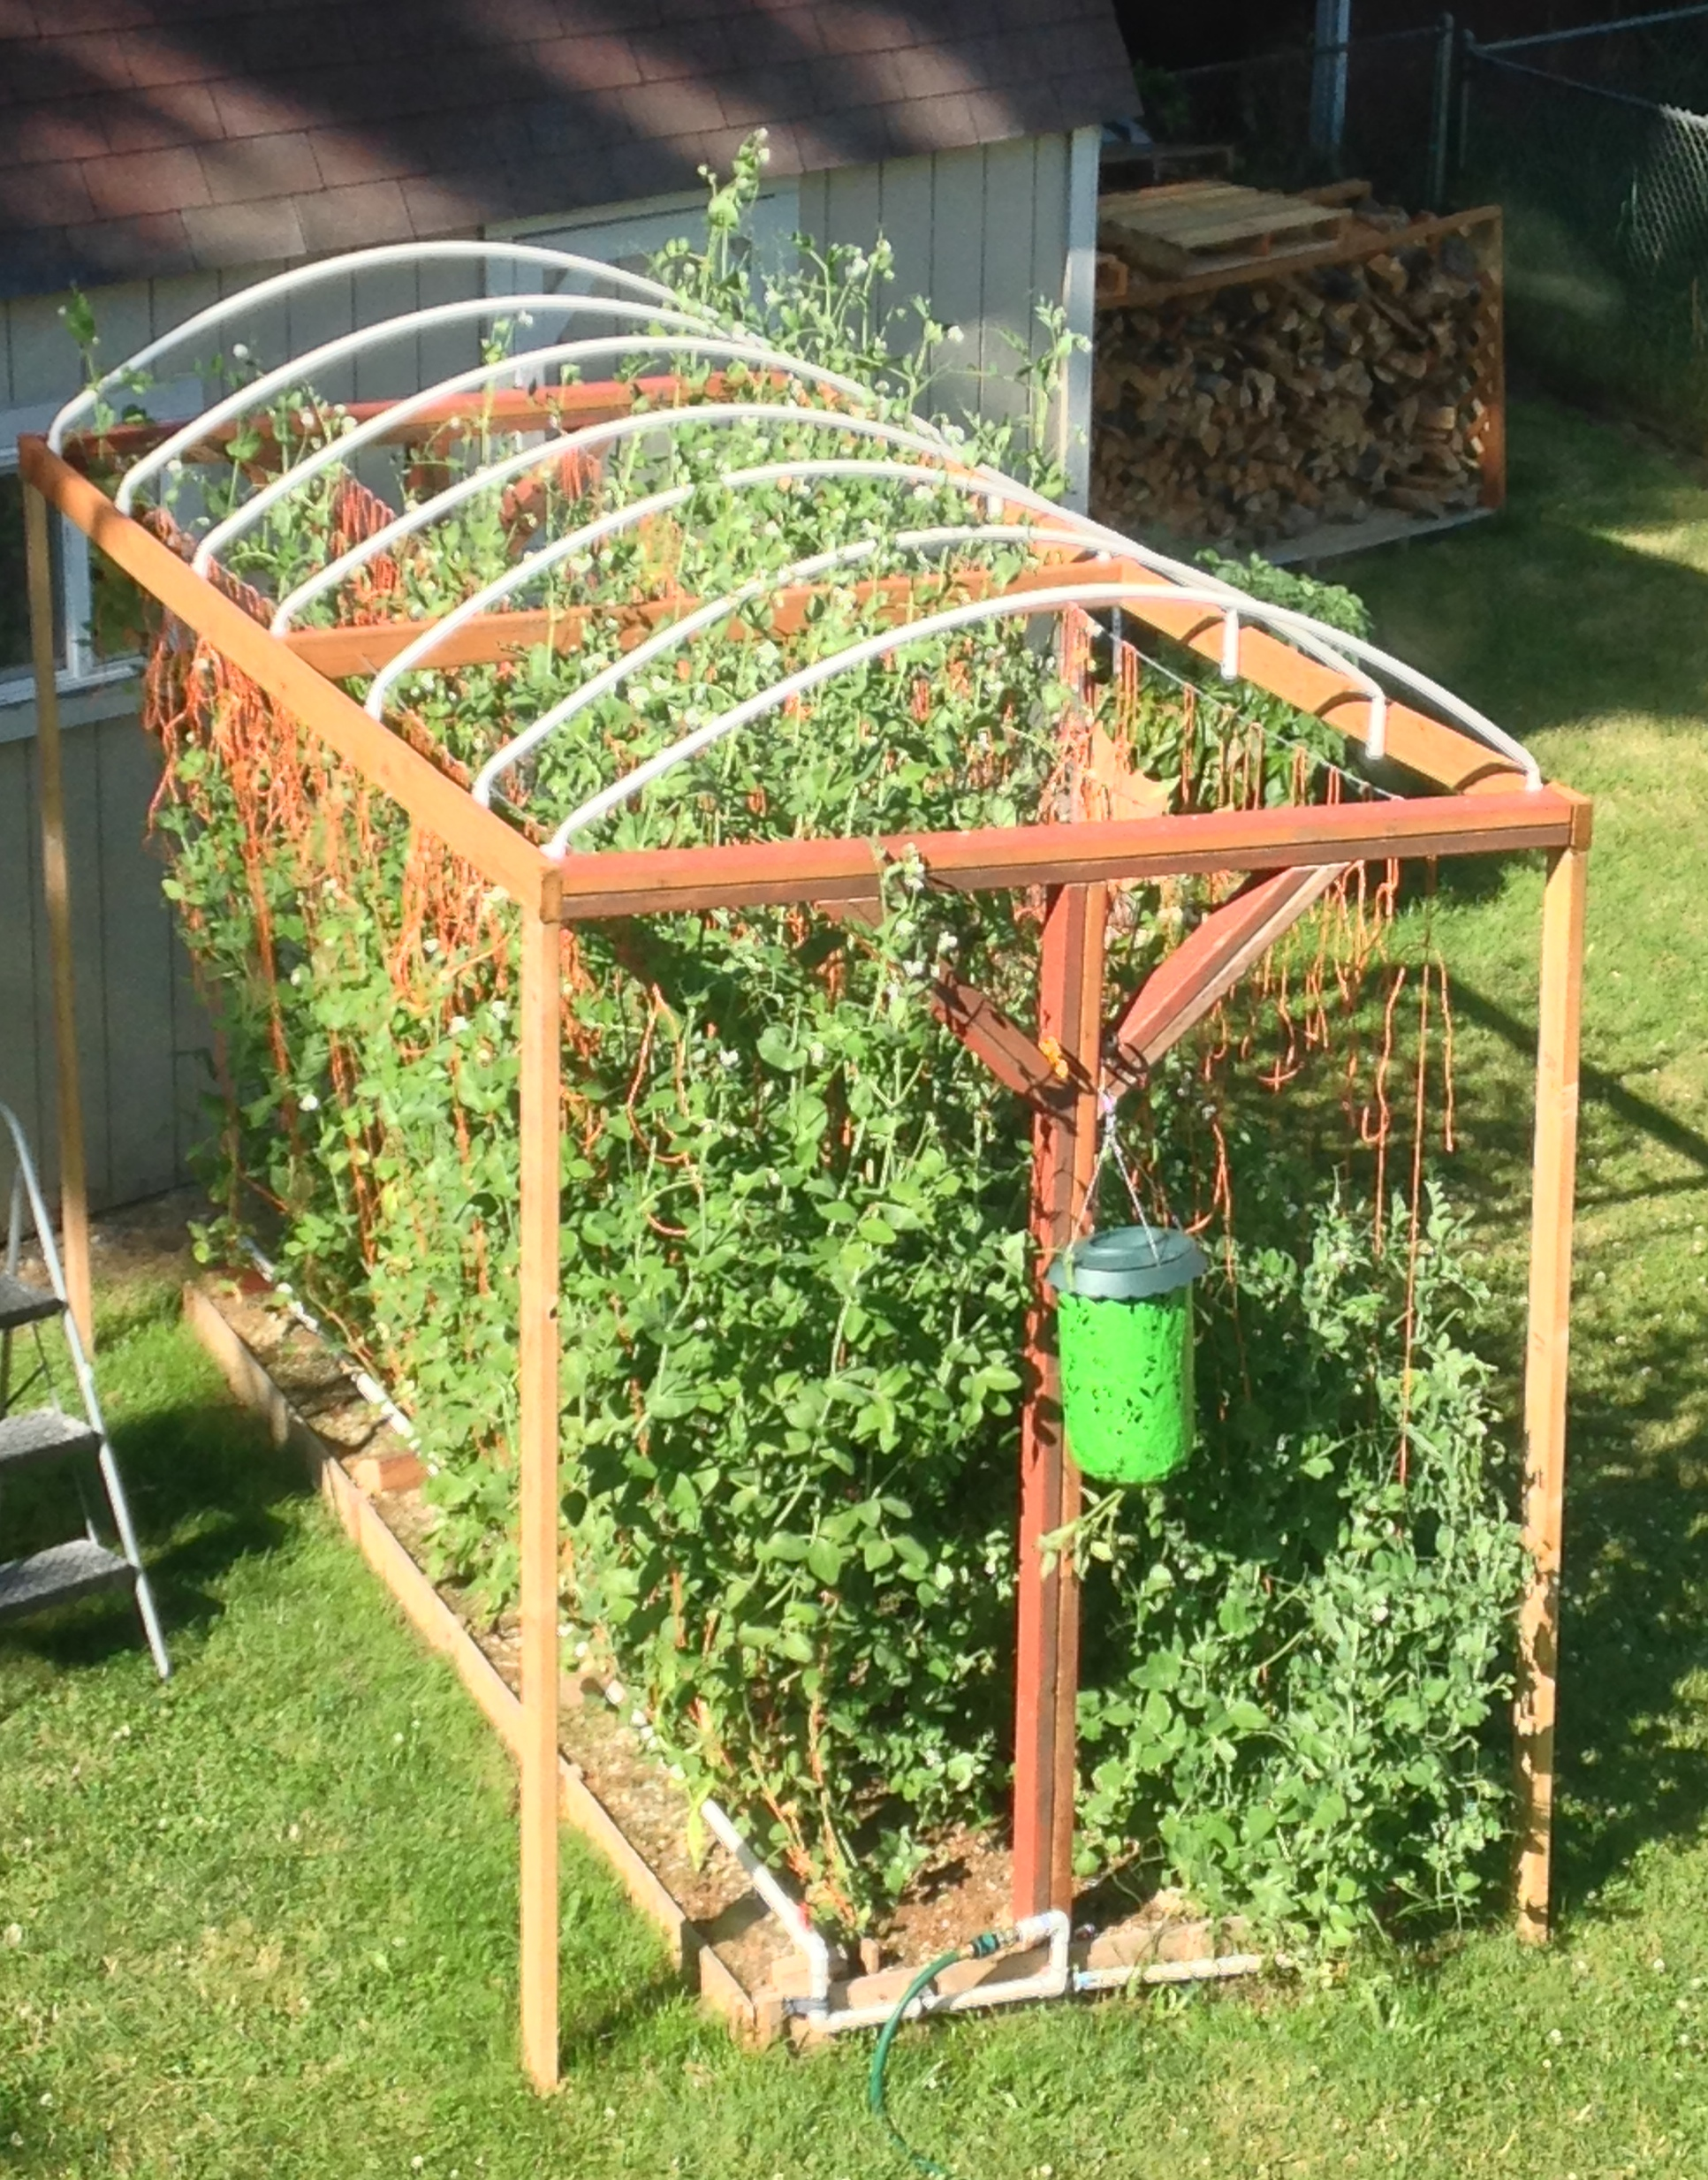 We Decided That Our Next Trellis System Will Be More Simple To Make And  Wouldnu0027t Need So Many Holes To Be Dug. I Saw Someone Posting On Facebook  Picture Of ...